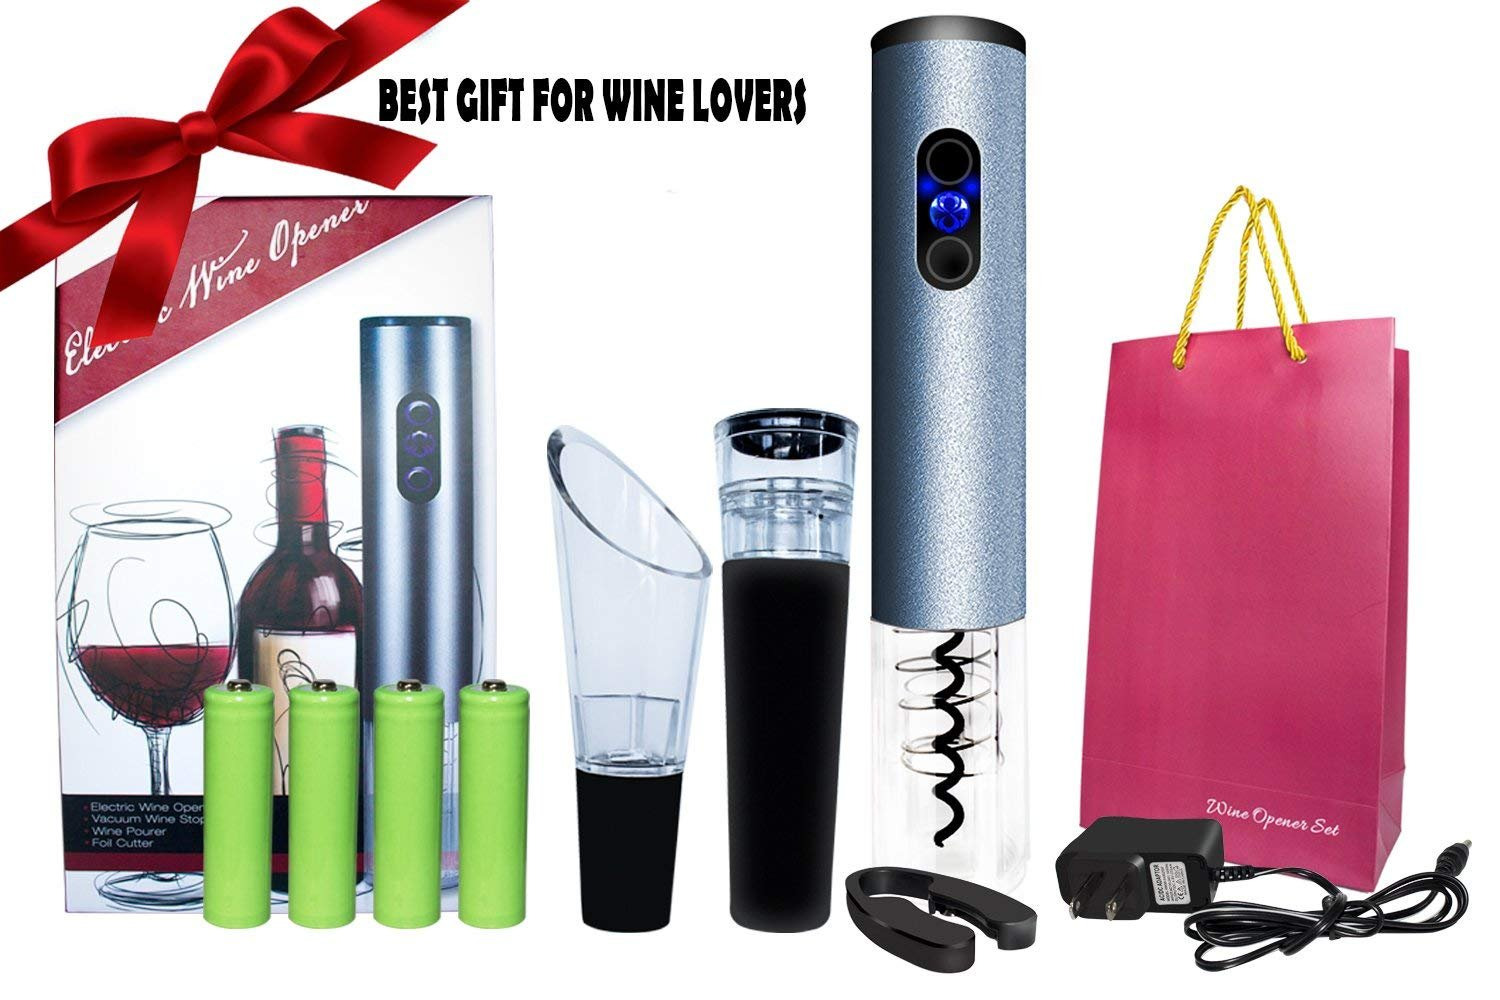 Wine Bottle Opener Kit, Best Kitchen Aid for Wine Bottle, Electric Wine Opener Battery Operated with Battery Charger, Perfect Present Idea